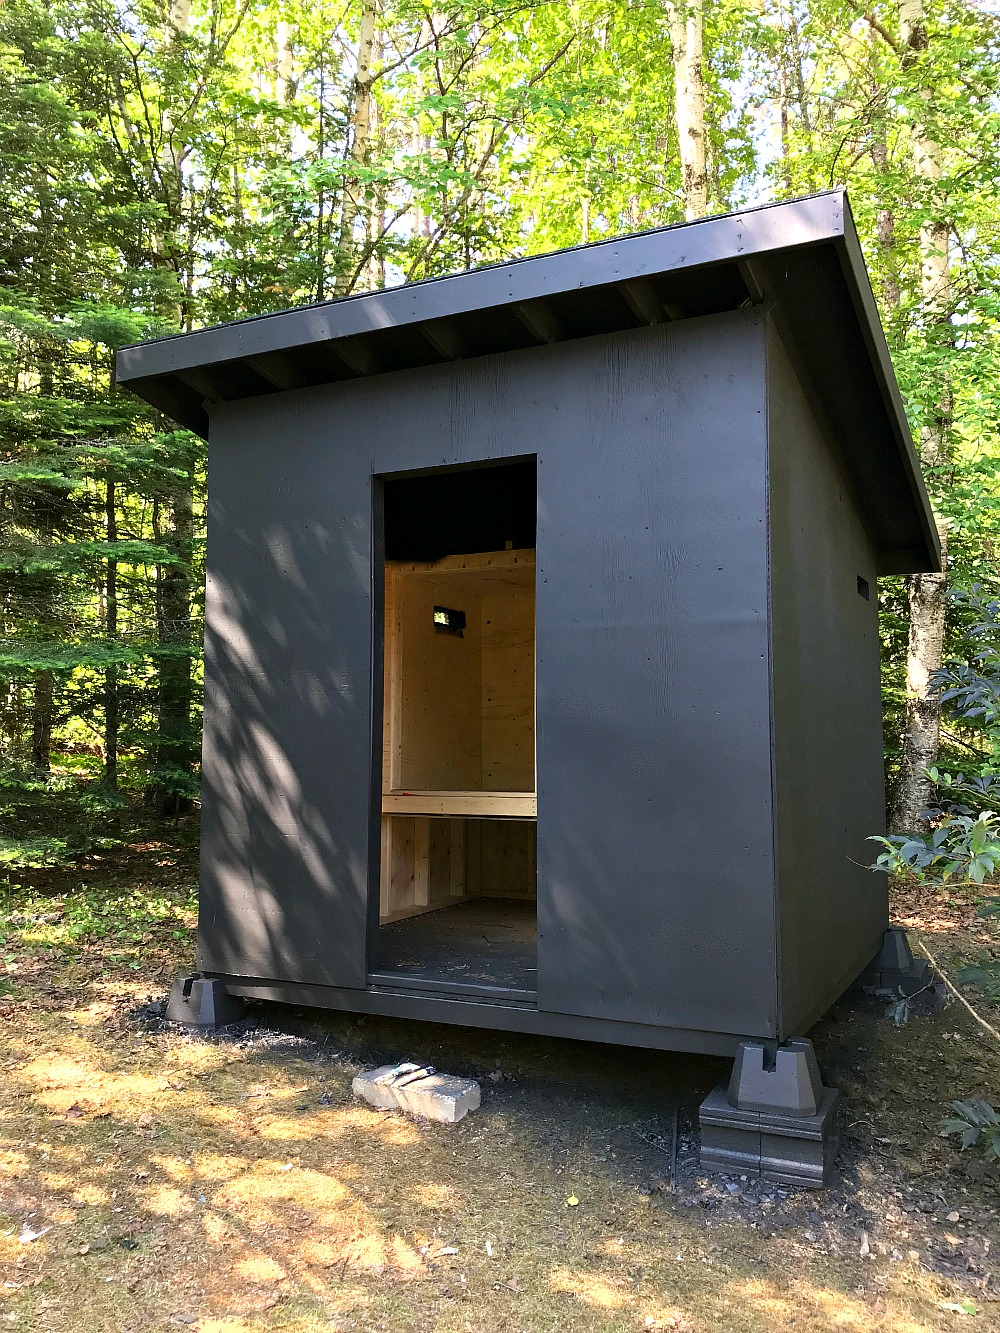 How to Build a Modern Shed or Chicken Coop